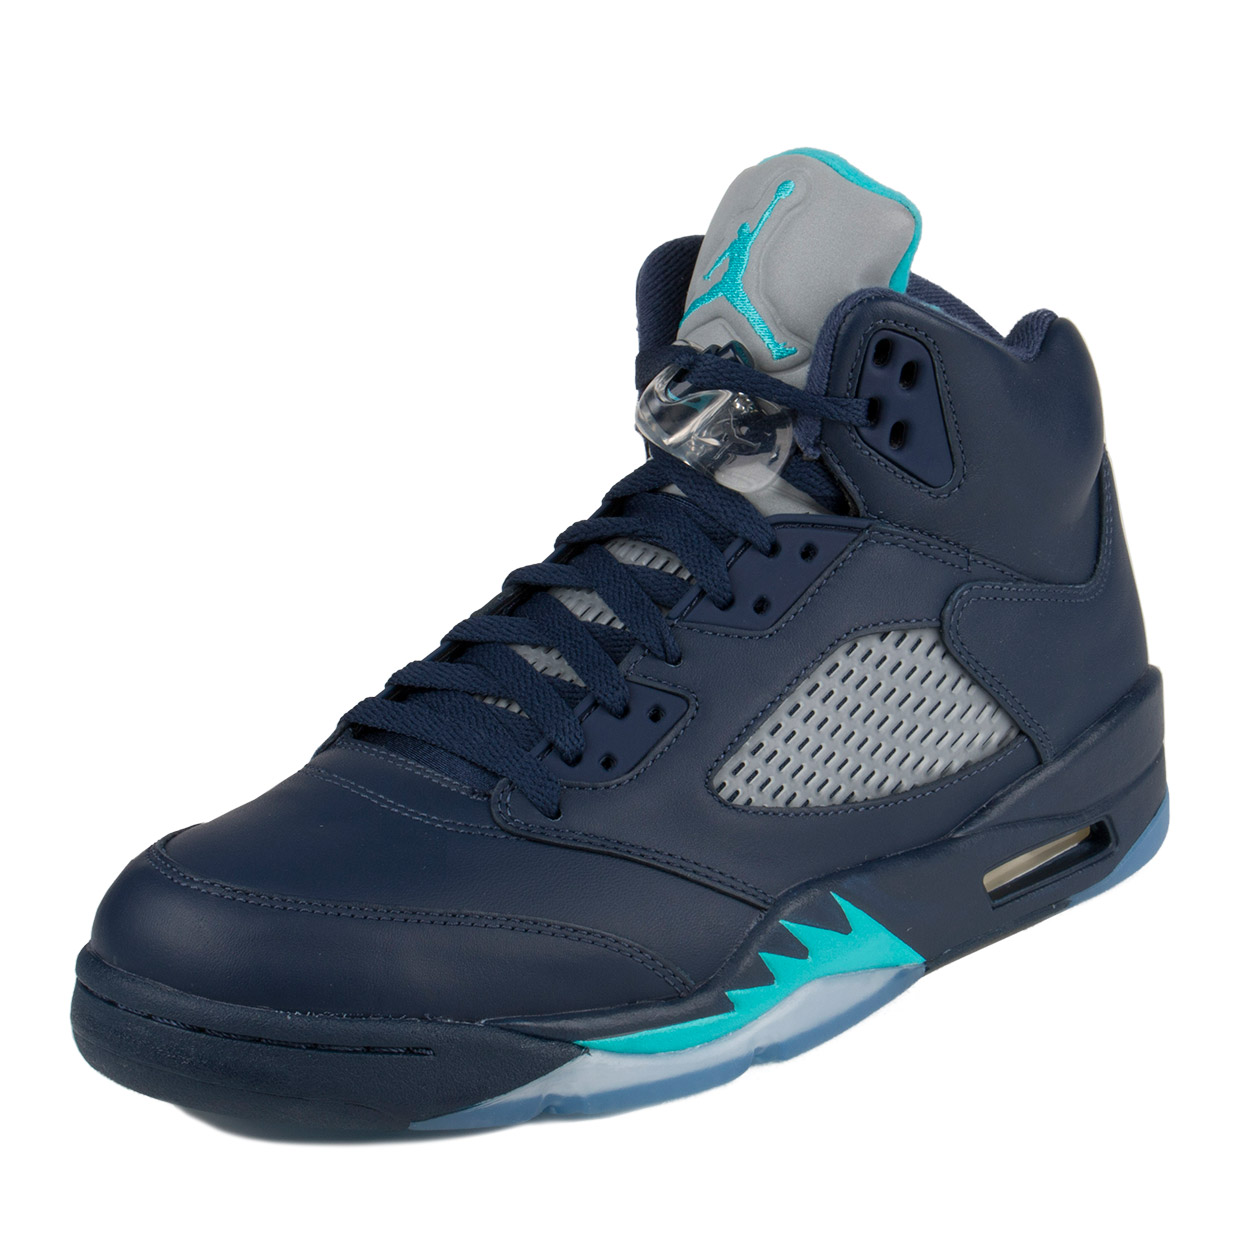 "Nike Mens Air Jordan 5 Retro ""Hornets"" Midnight Navy/Turqouise Blue 136027-405"